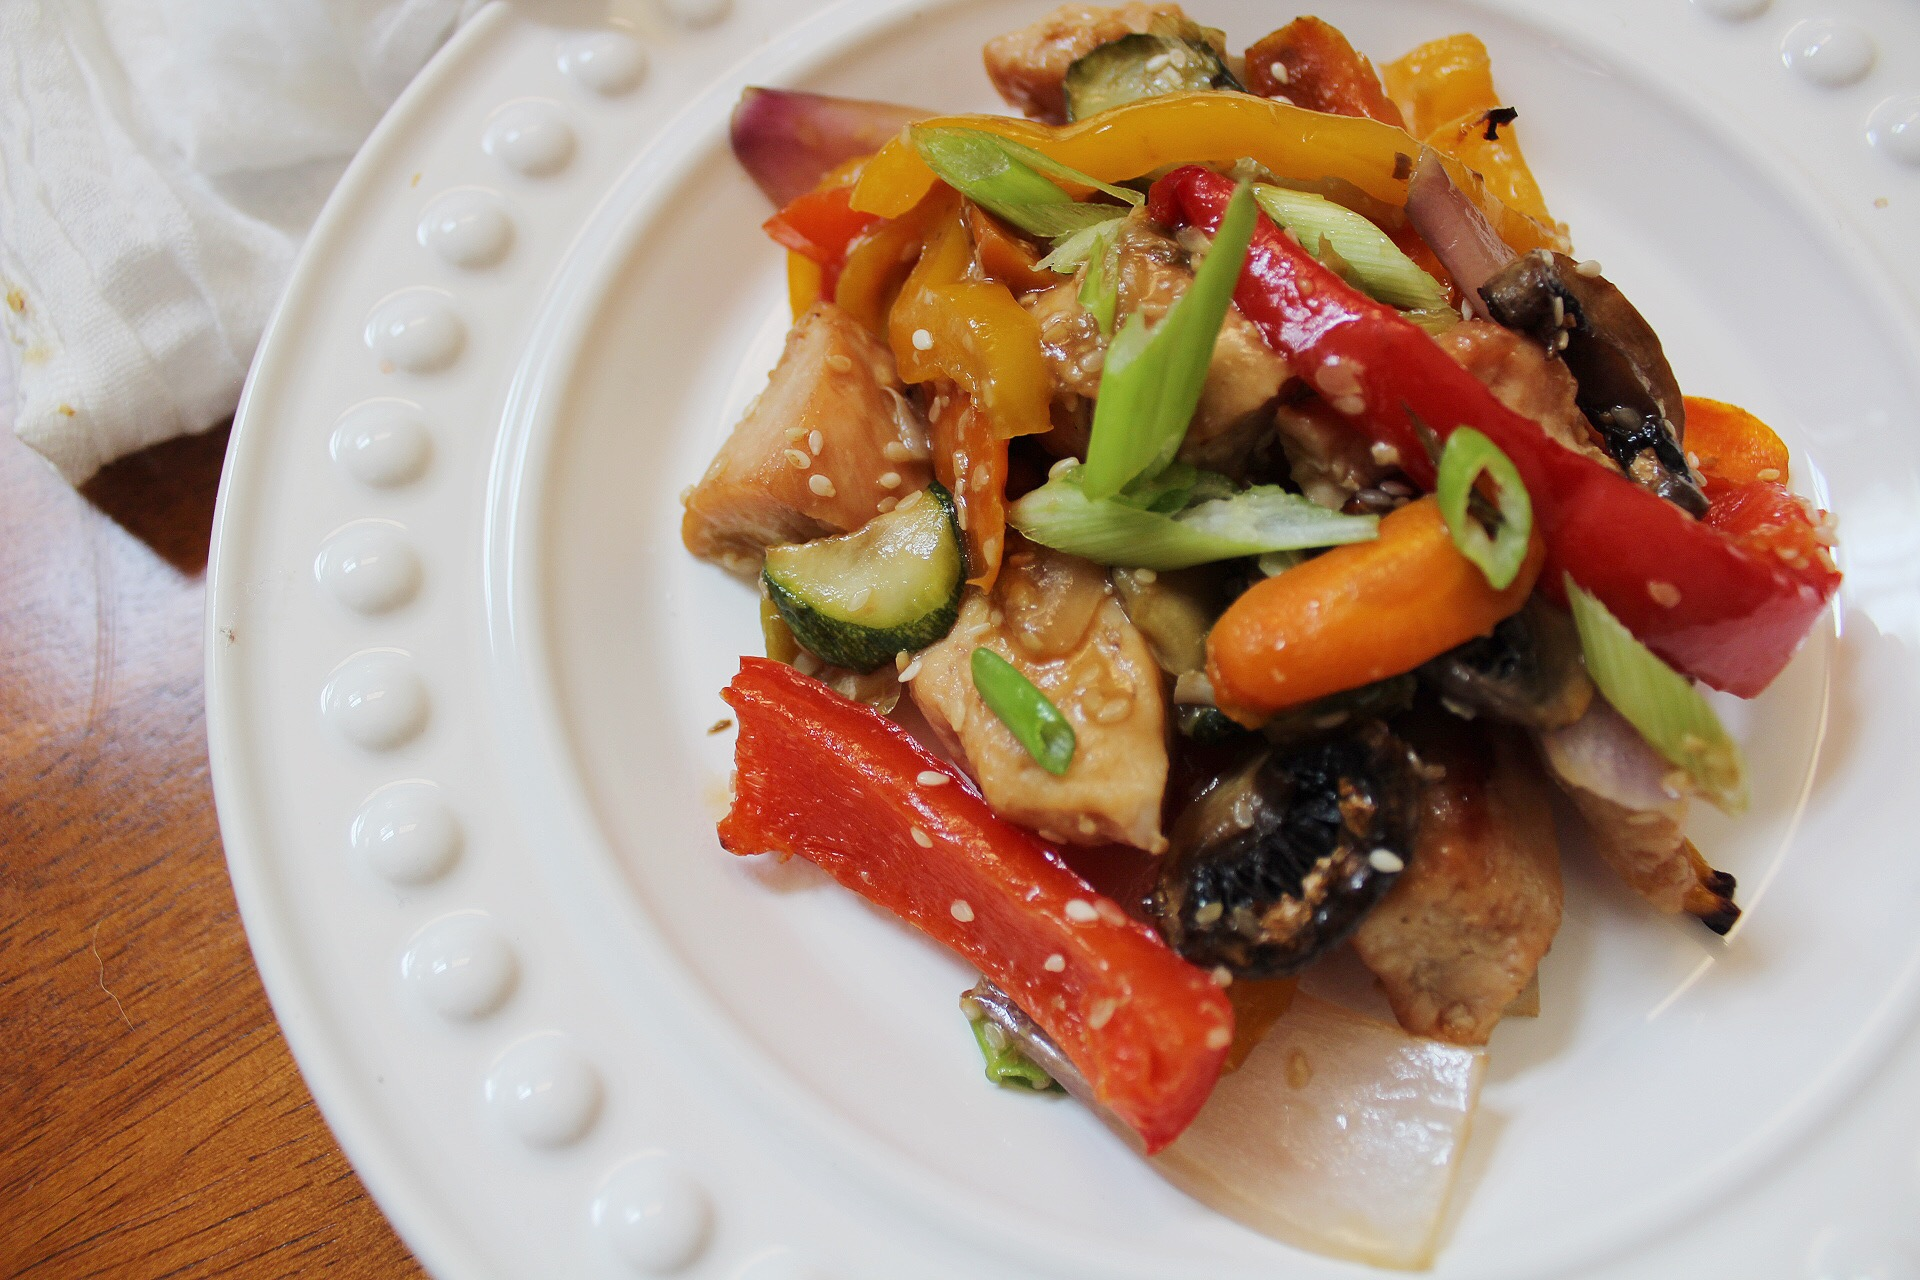 Sheet Pan Chicken Stir Fry: Paleo & Whole30 30 Minute Meal